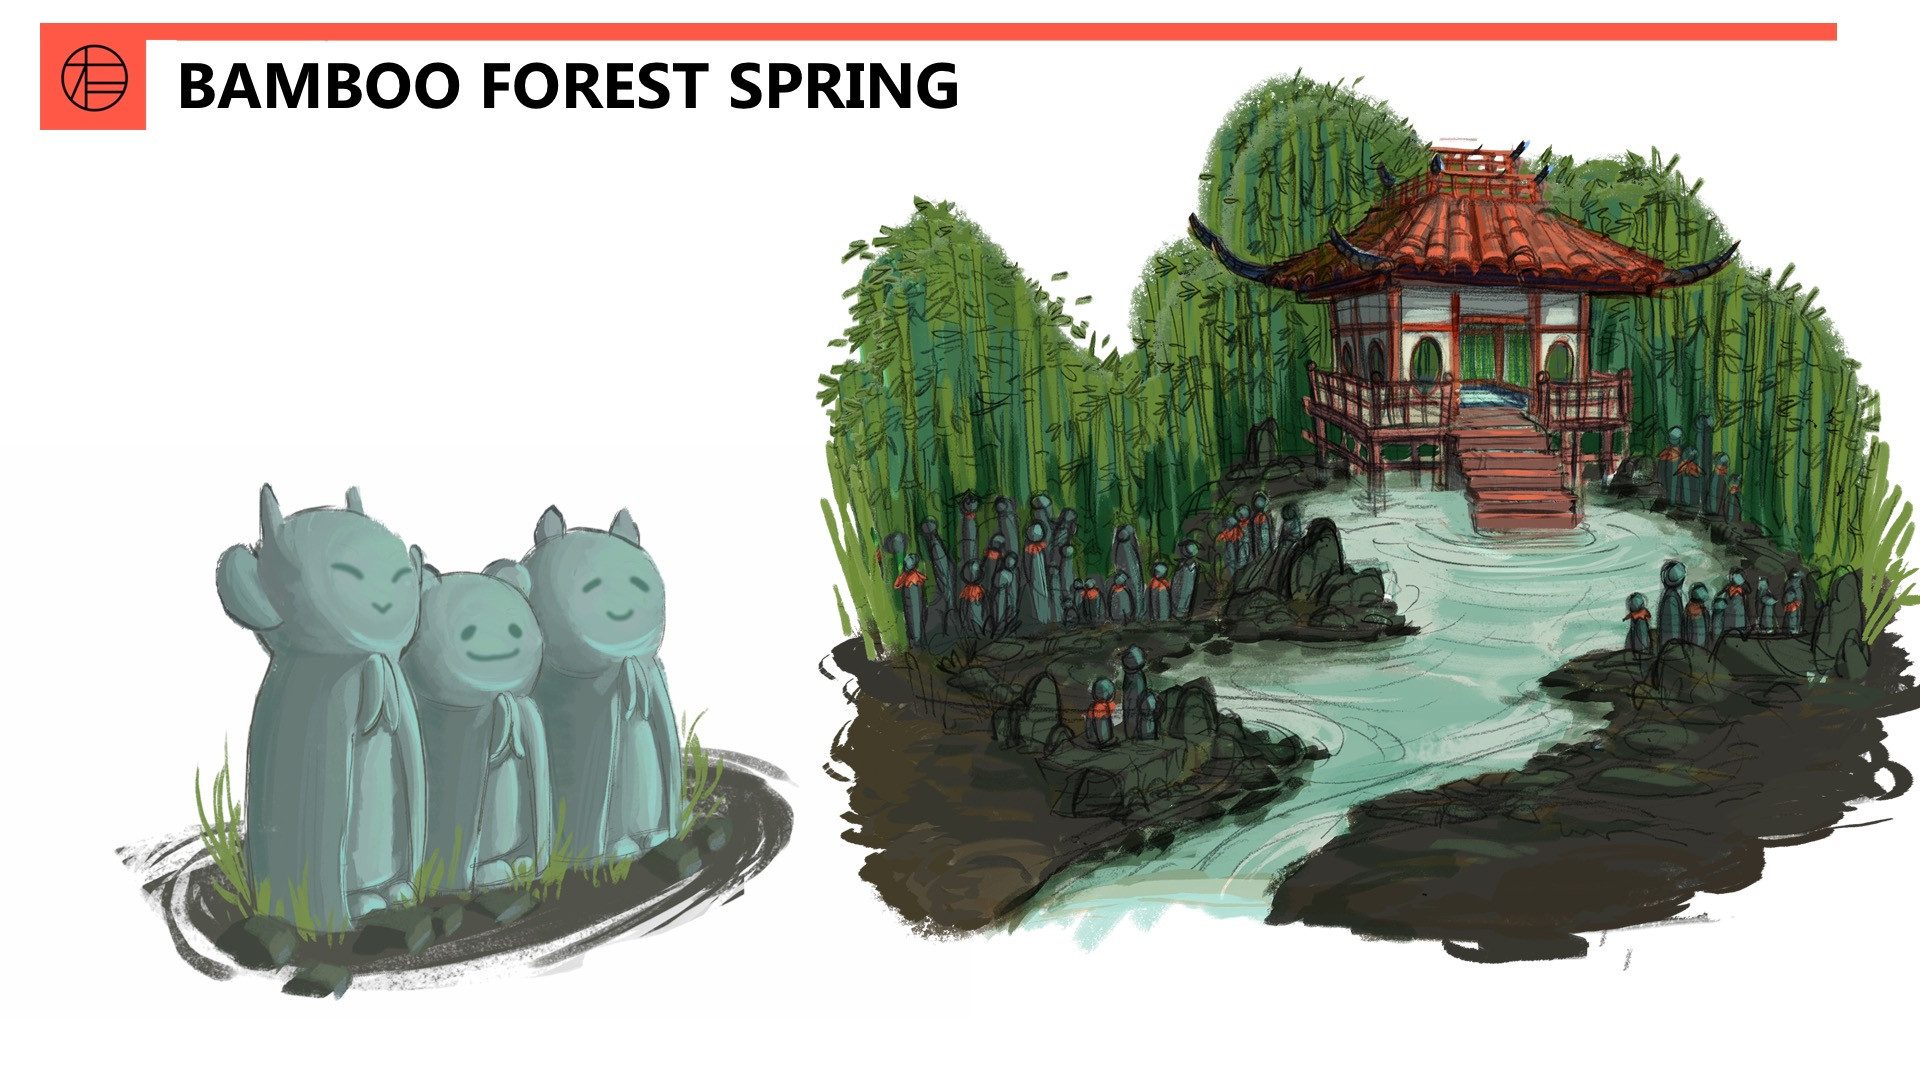 Bamboo Forest Spring